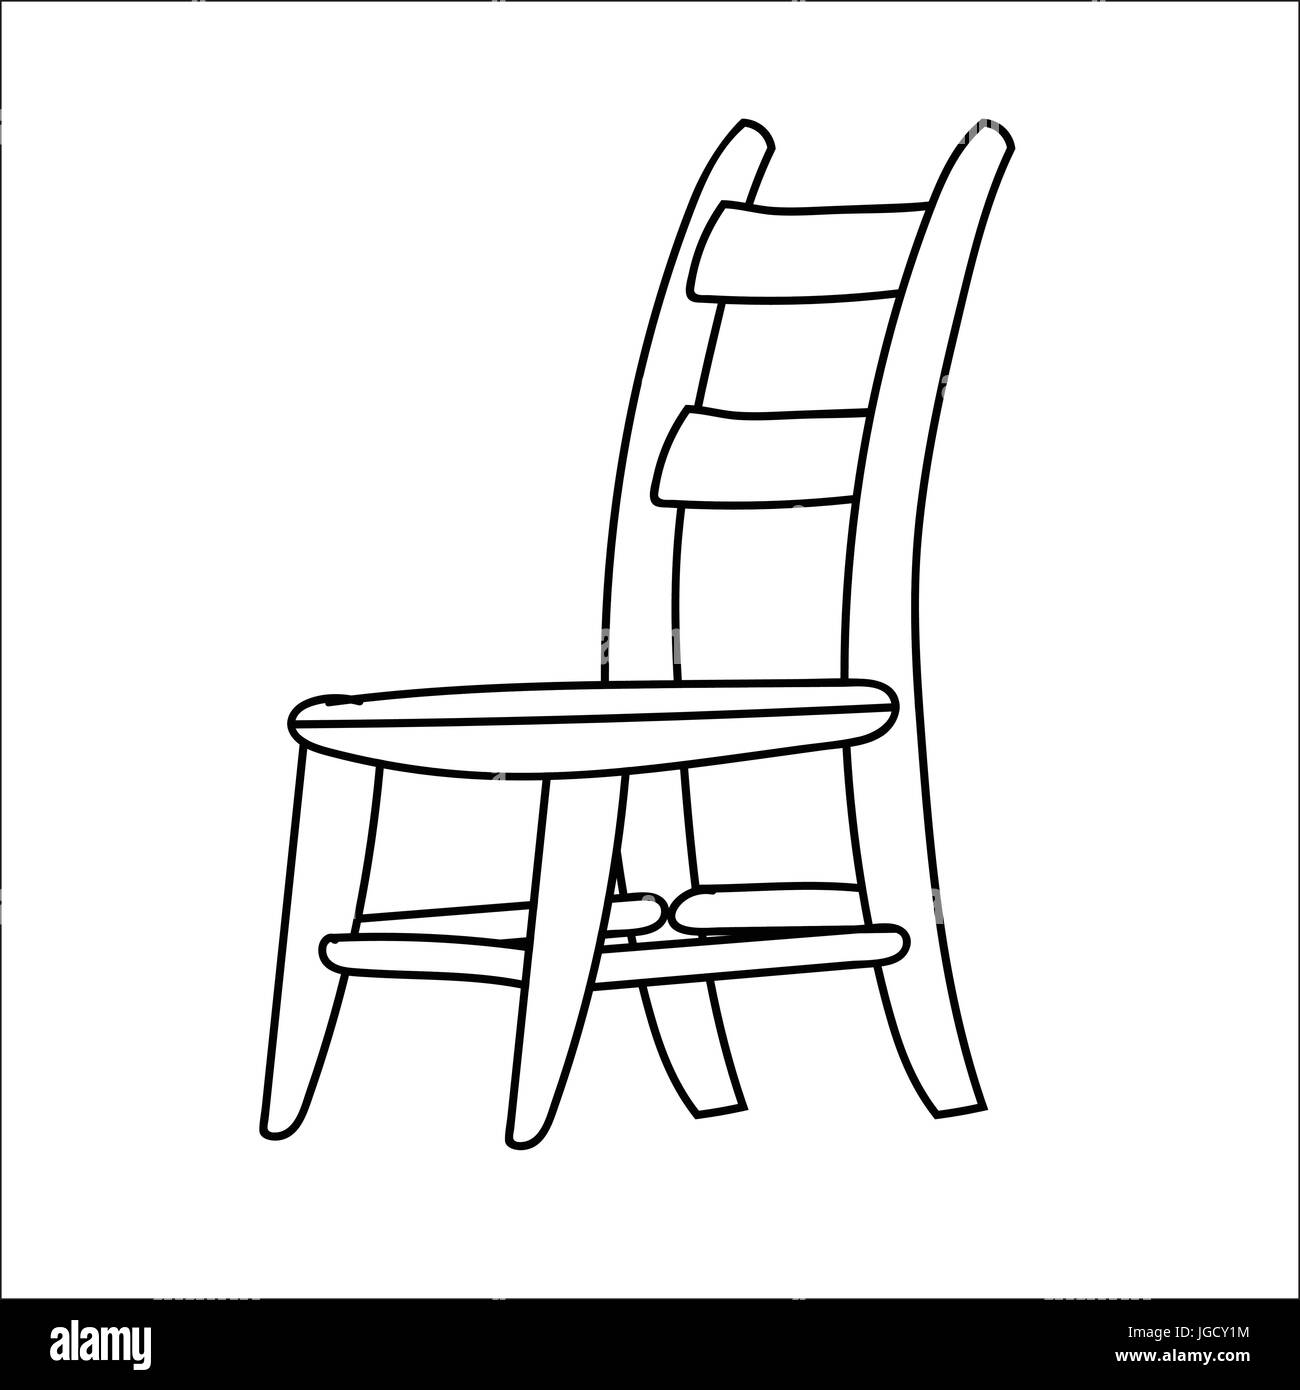 Hand Drawn Sketch Of Chair Isolated, Black And White